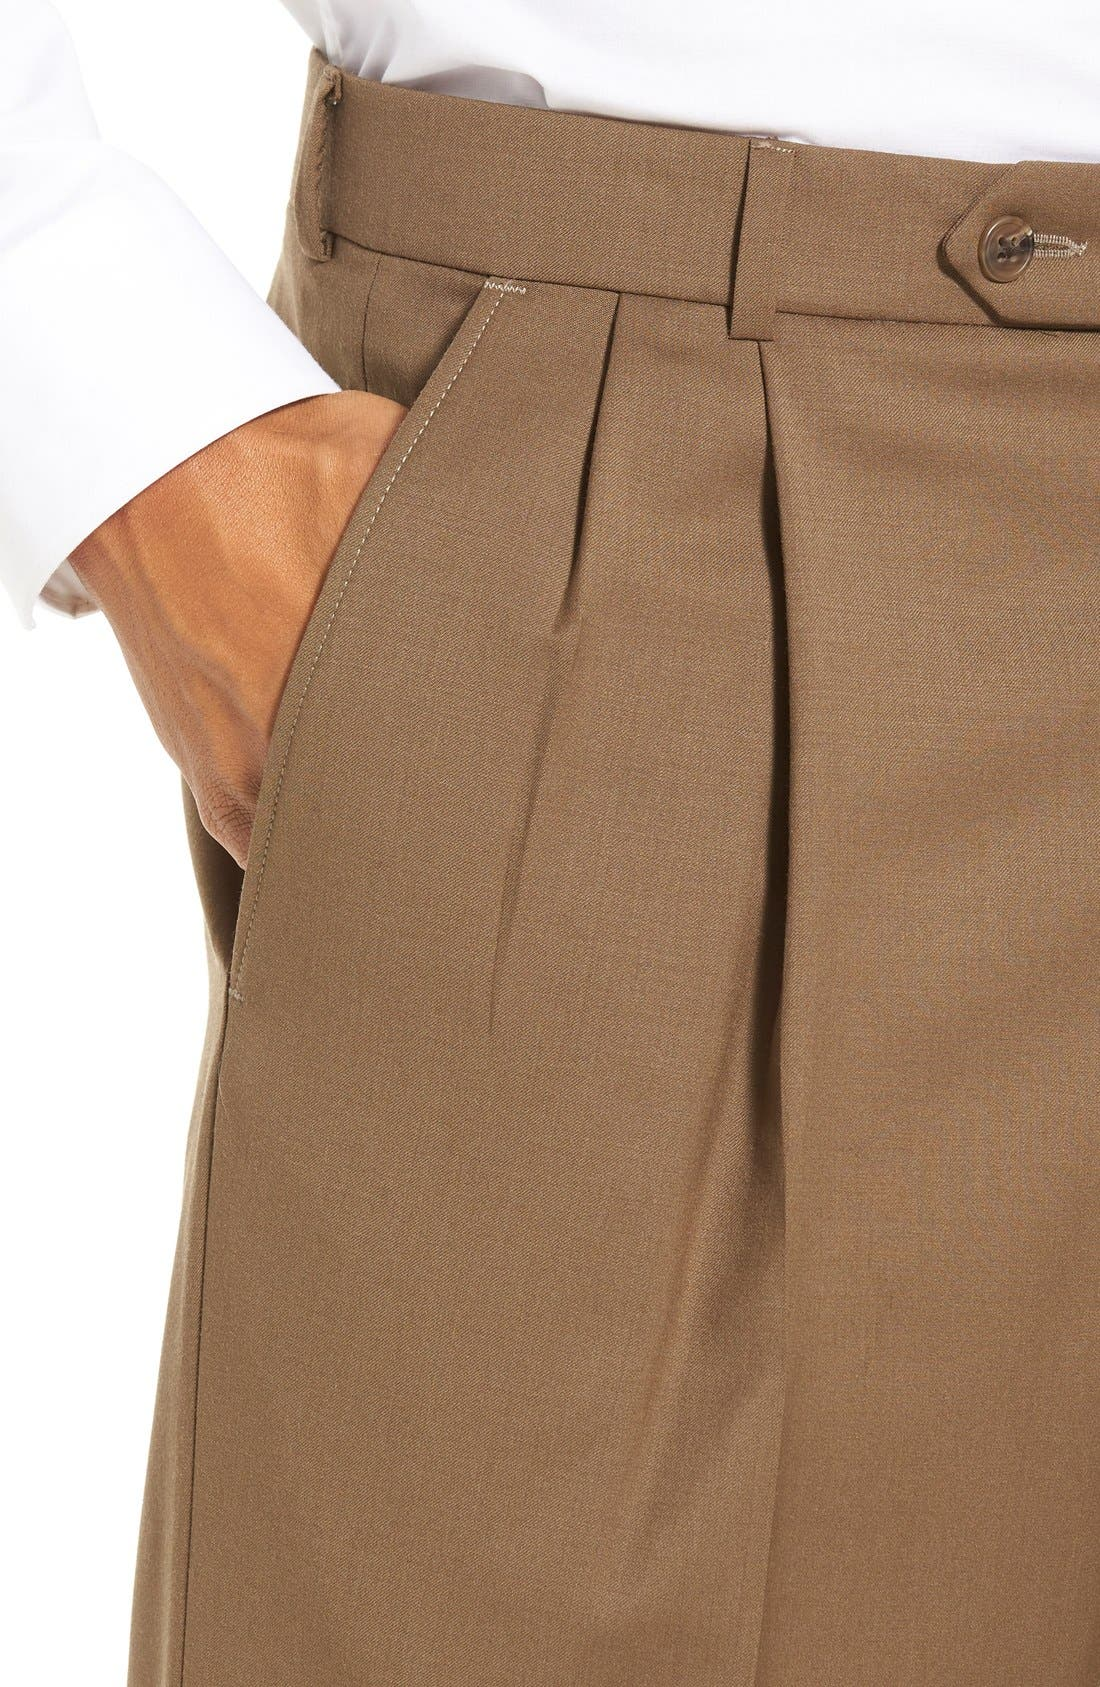 Pleated Solid Wool Trousers,                             Alternate thumbnail 47, color,